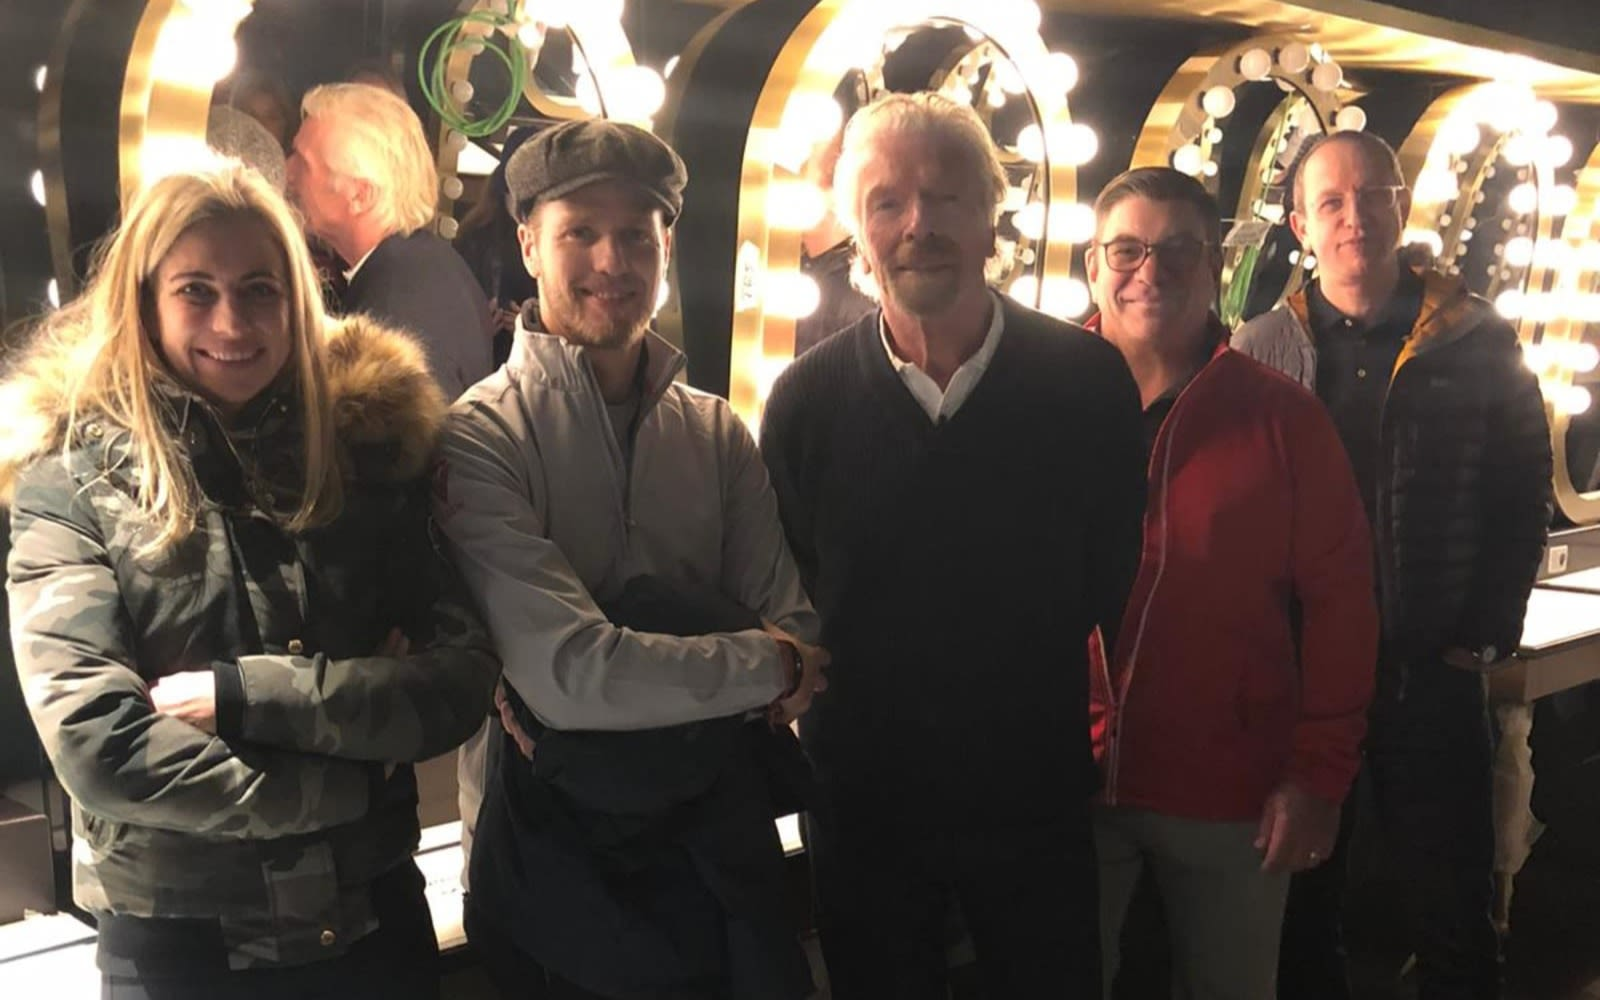 Richard Branson with Holly, Sam and Tom McAlpin and Shai Weiss onboard Scarlet Lady